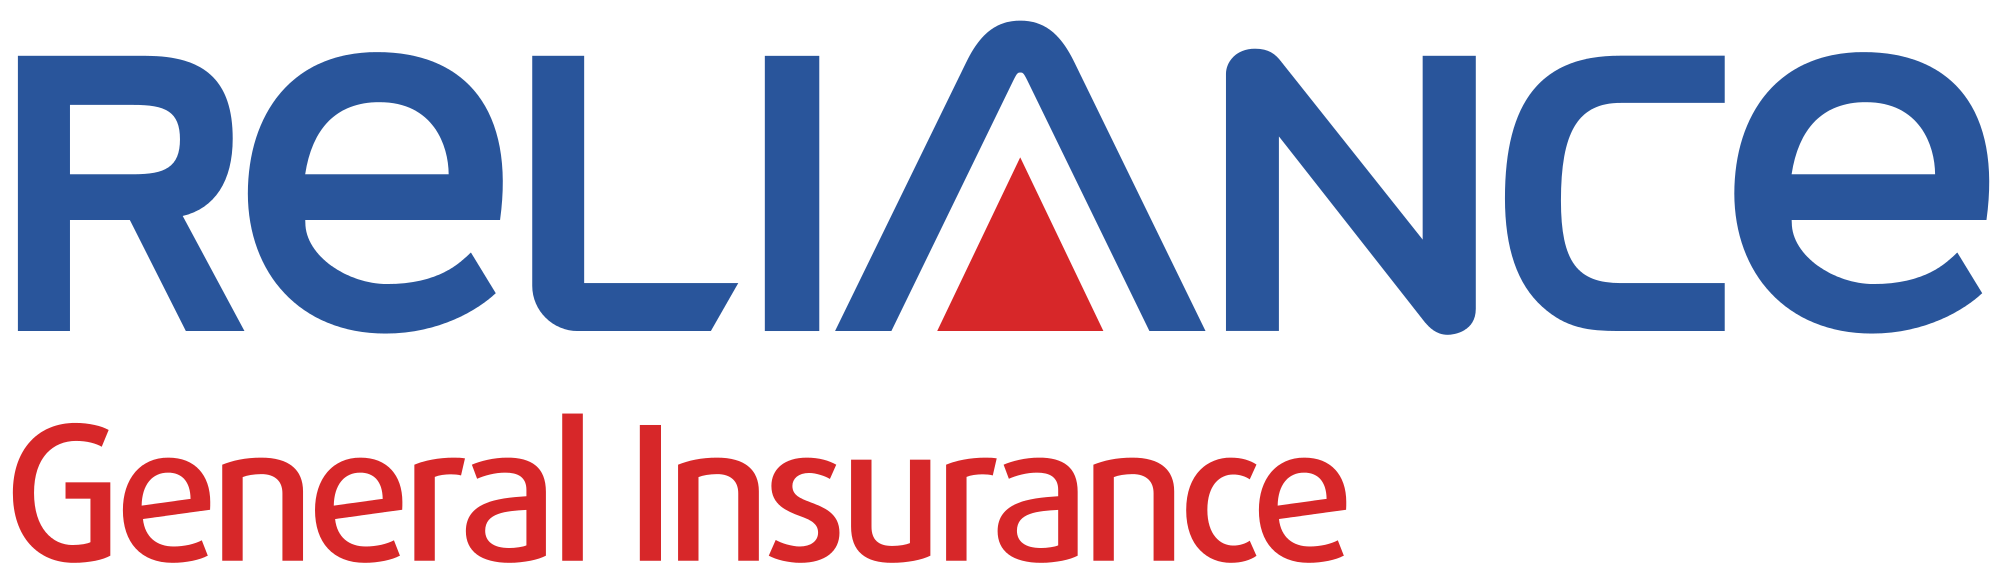 Reliance General Insurance